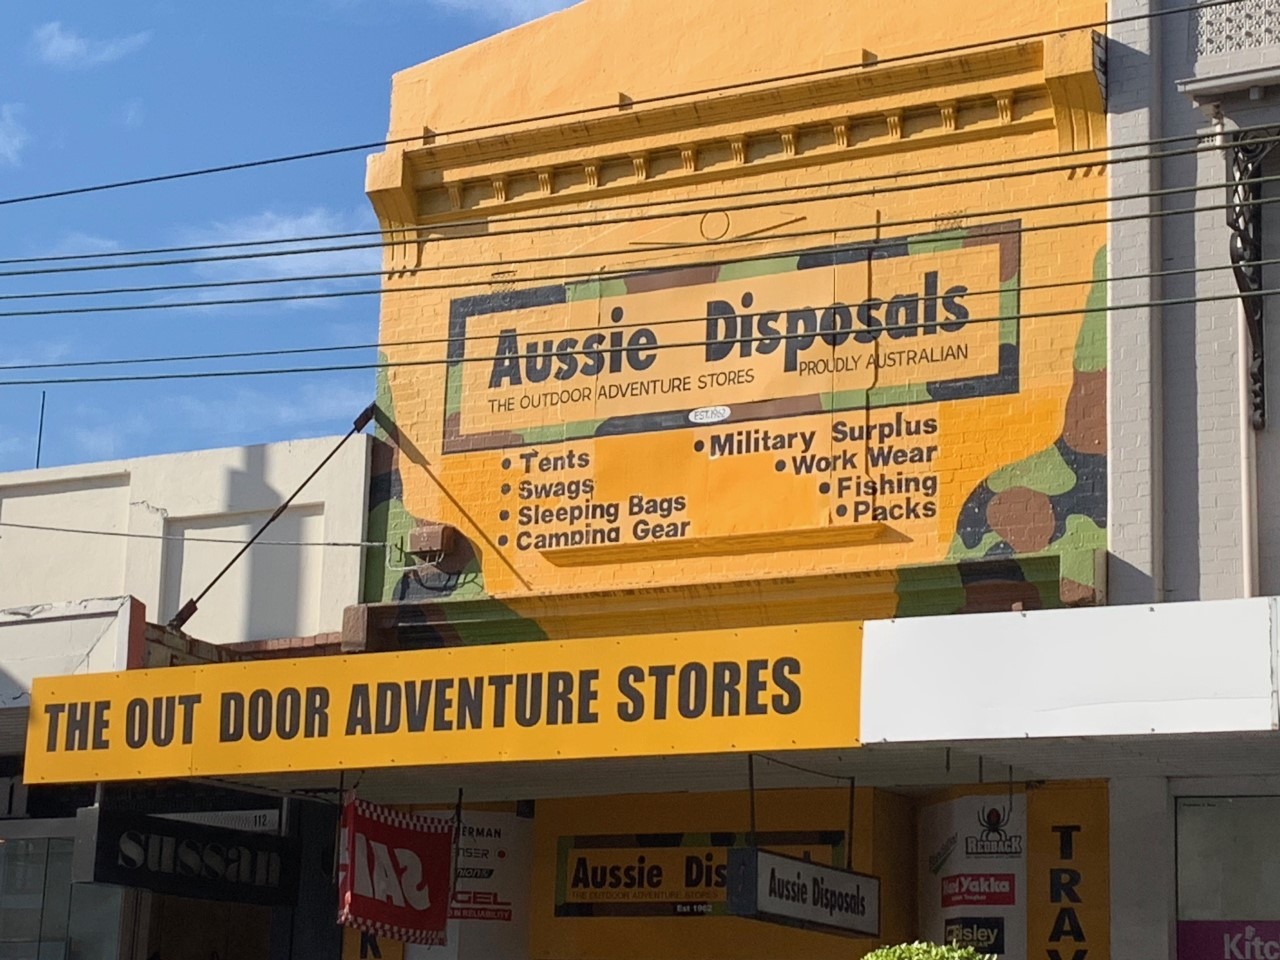 """Questioned about claims by former employees that they had been underpaid, Aussie Disposals said in a statement that it was disappointed by the allegations, but that the retailer had provided opportunities """"for thousands of team members over the years to not only learn life skills but also to earn money to support them through both secondary school and university""""."""